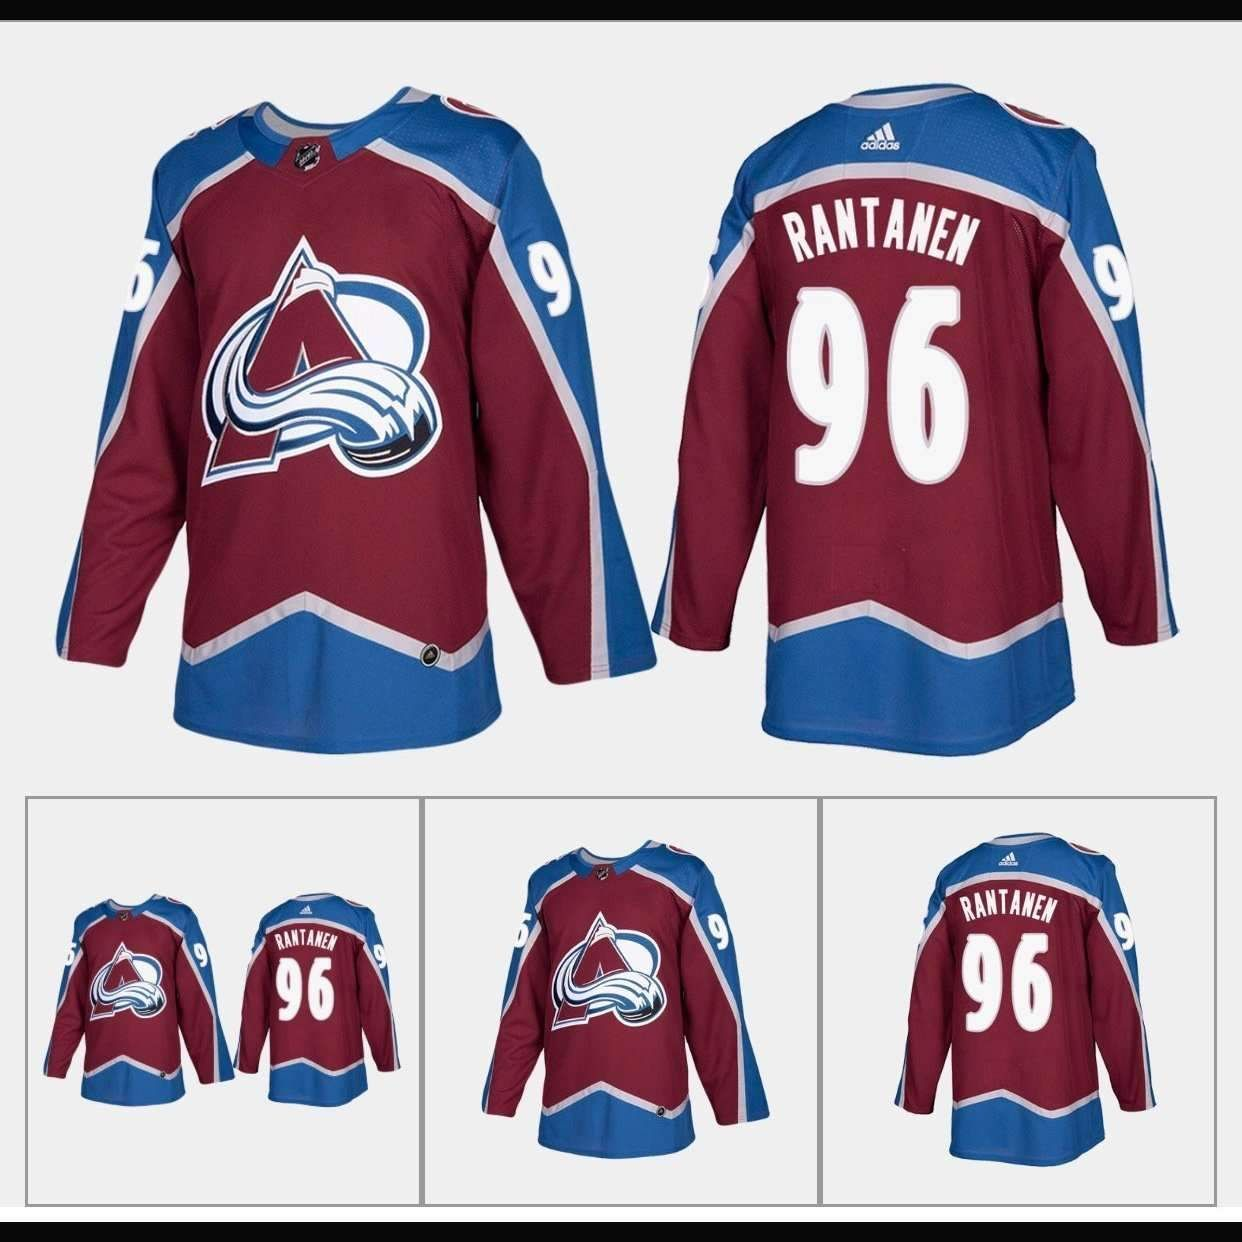 free shipping d8b24 62810 Colorado Avalanche Premier Adidas NHL Home - Road & Alt ...